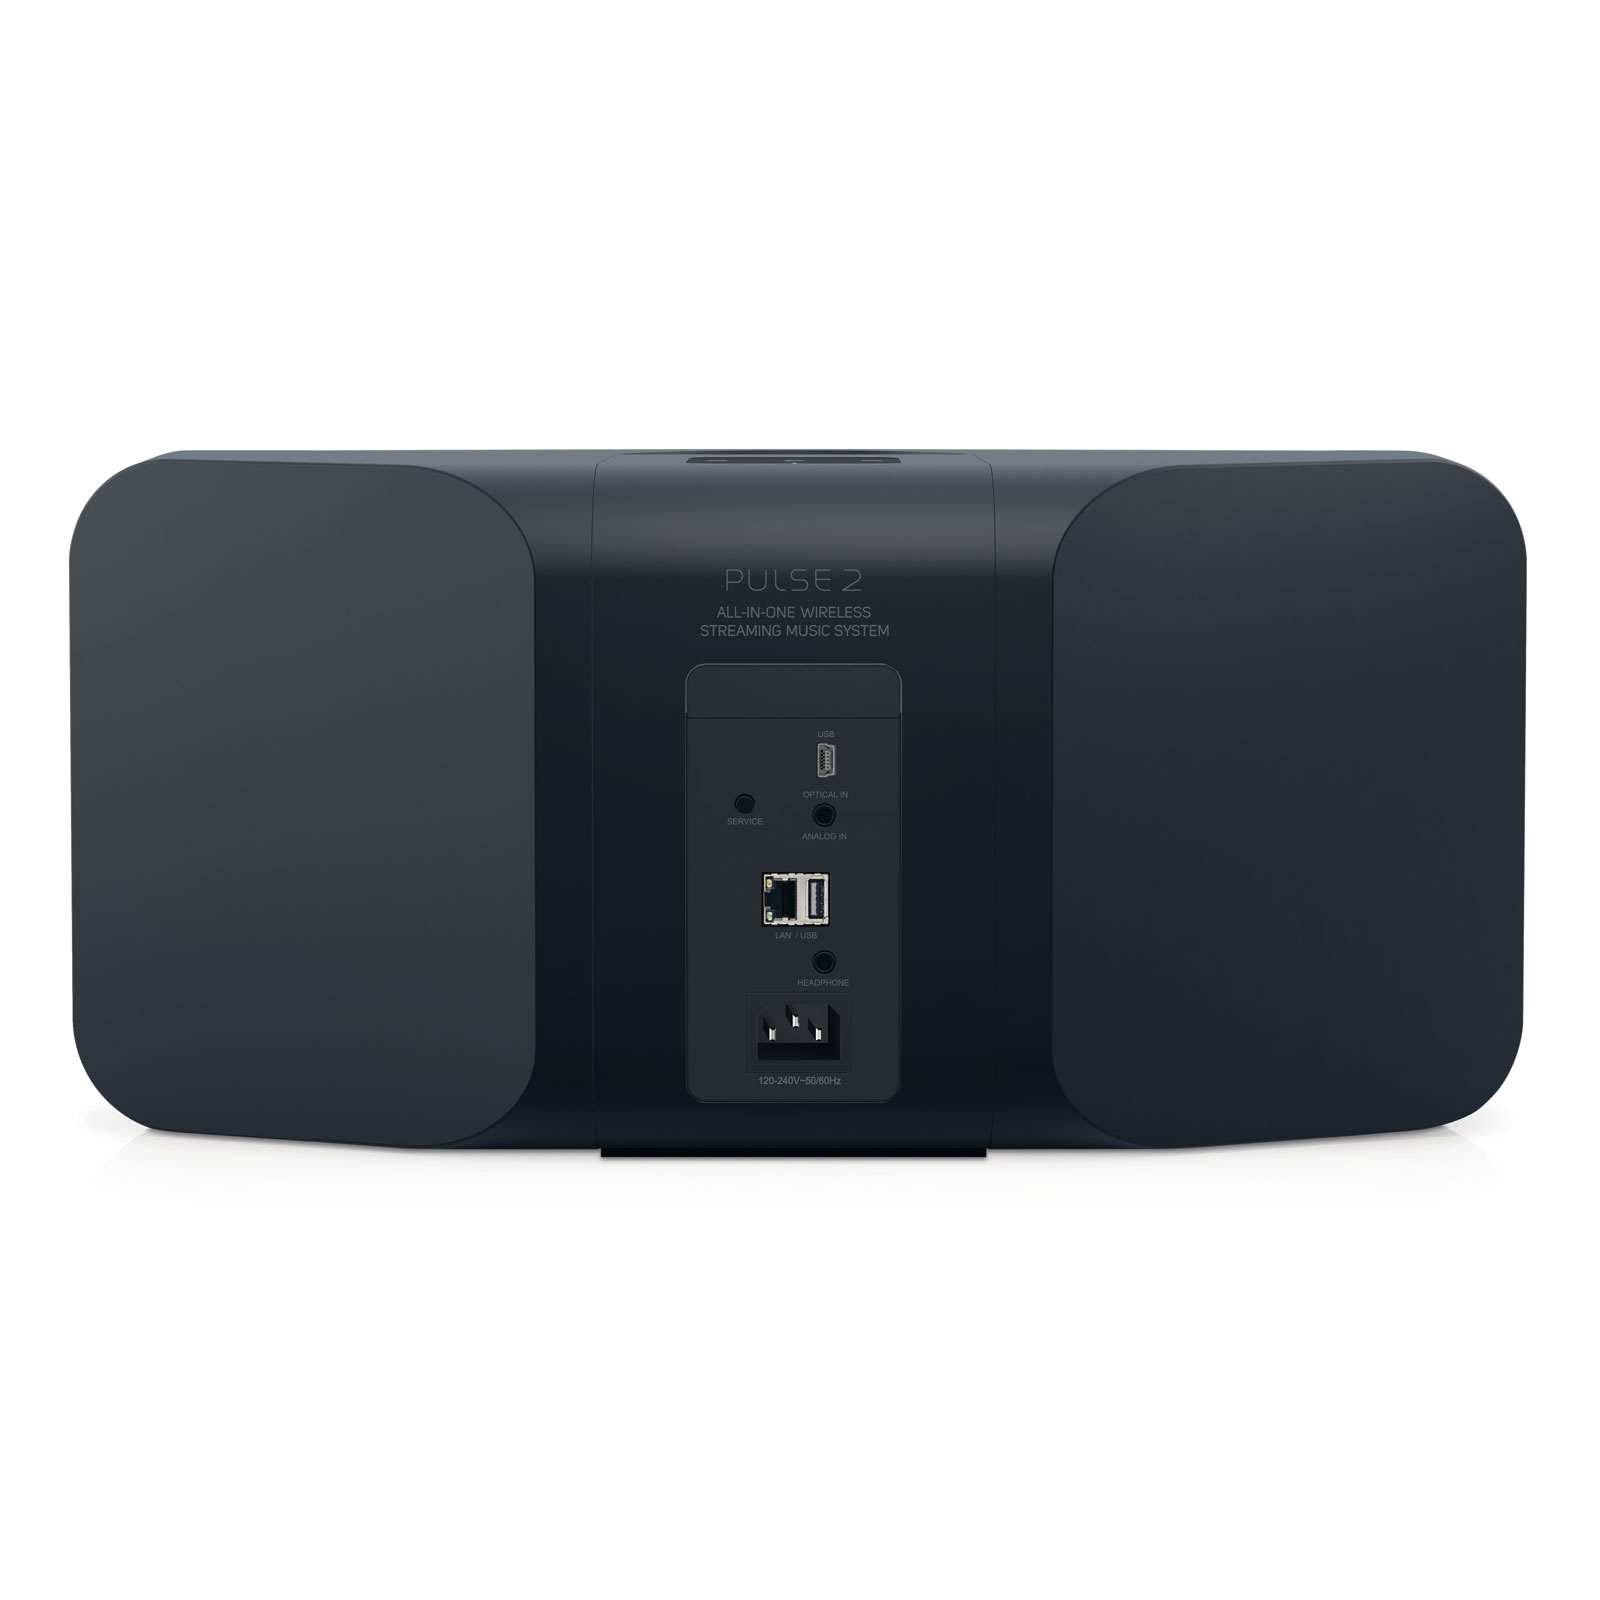 bluesound pulse 2 noir pulse 2 b achat vente dock. Black Bedroom Furniture Sets. Home Design Ideas